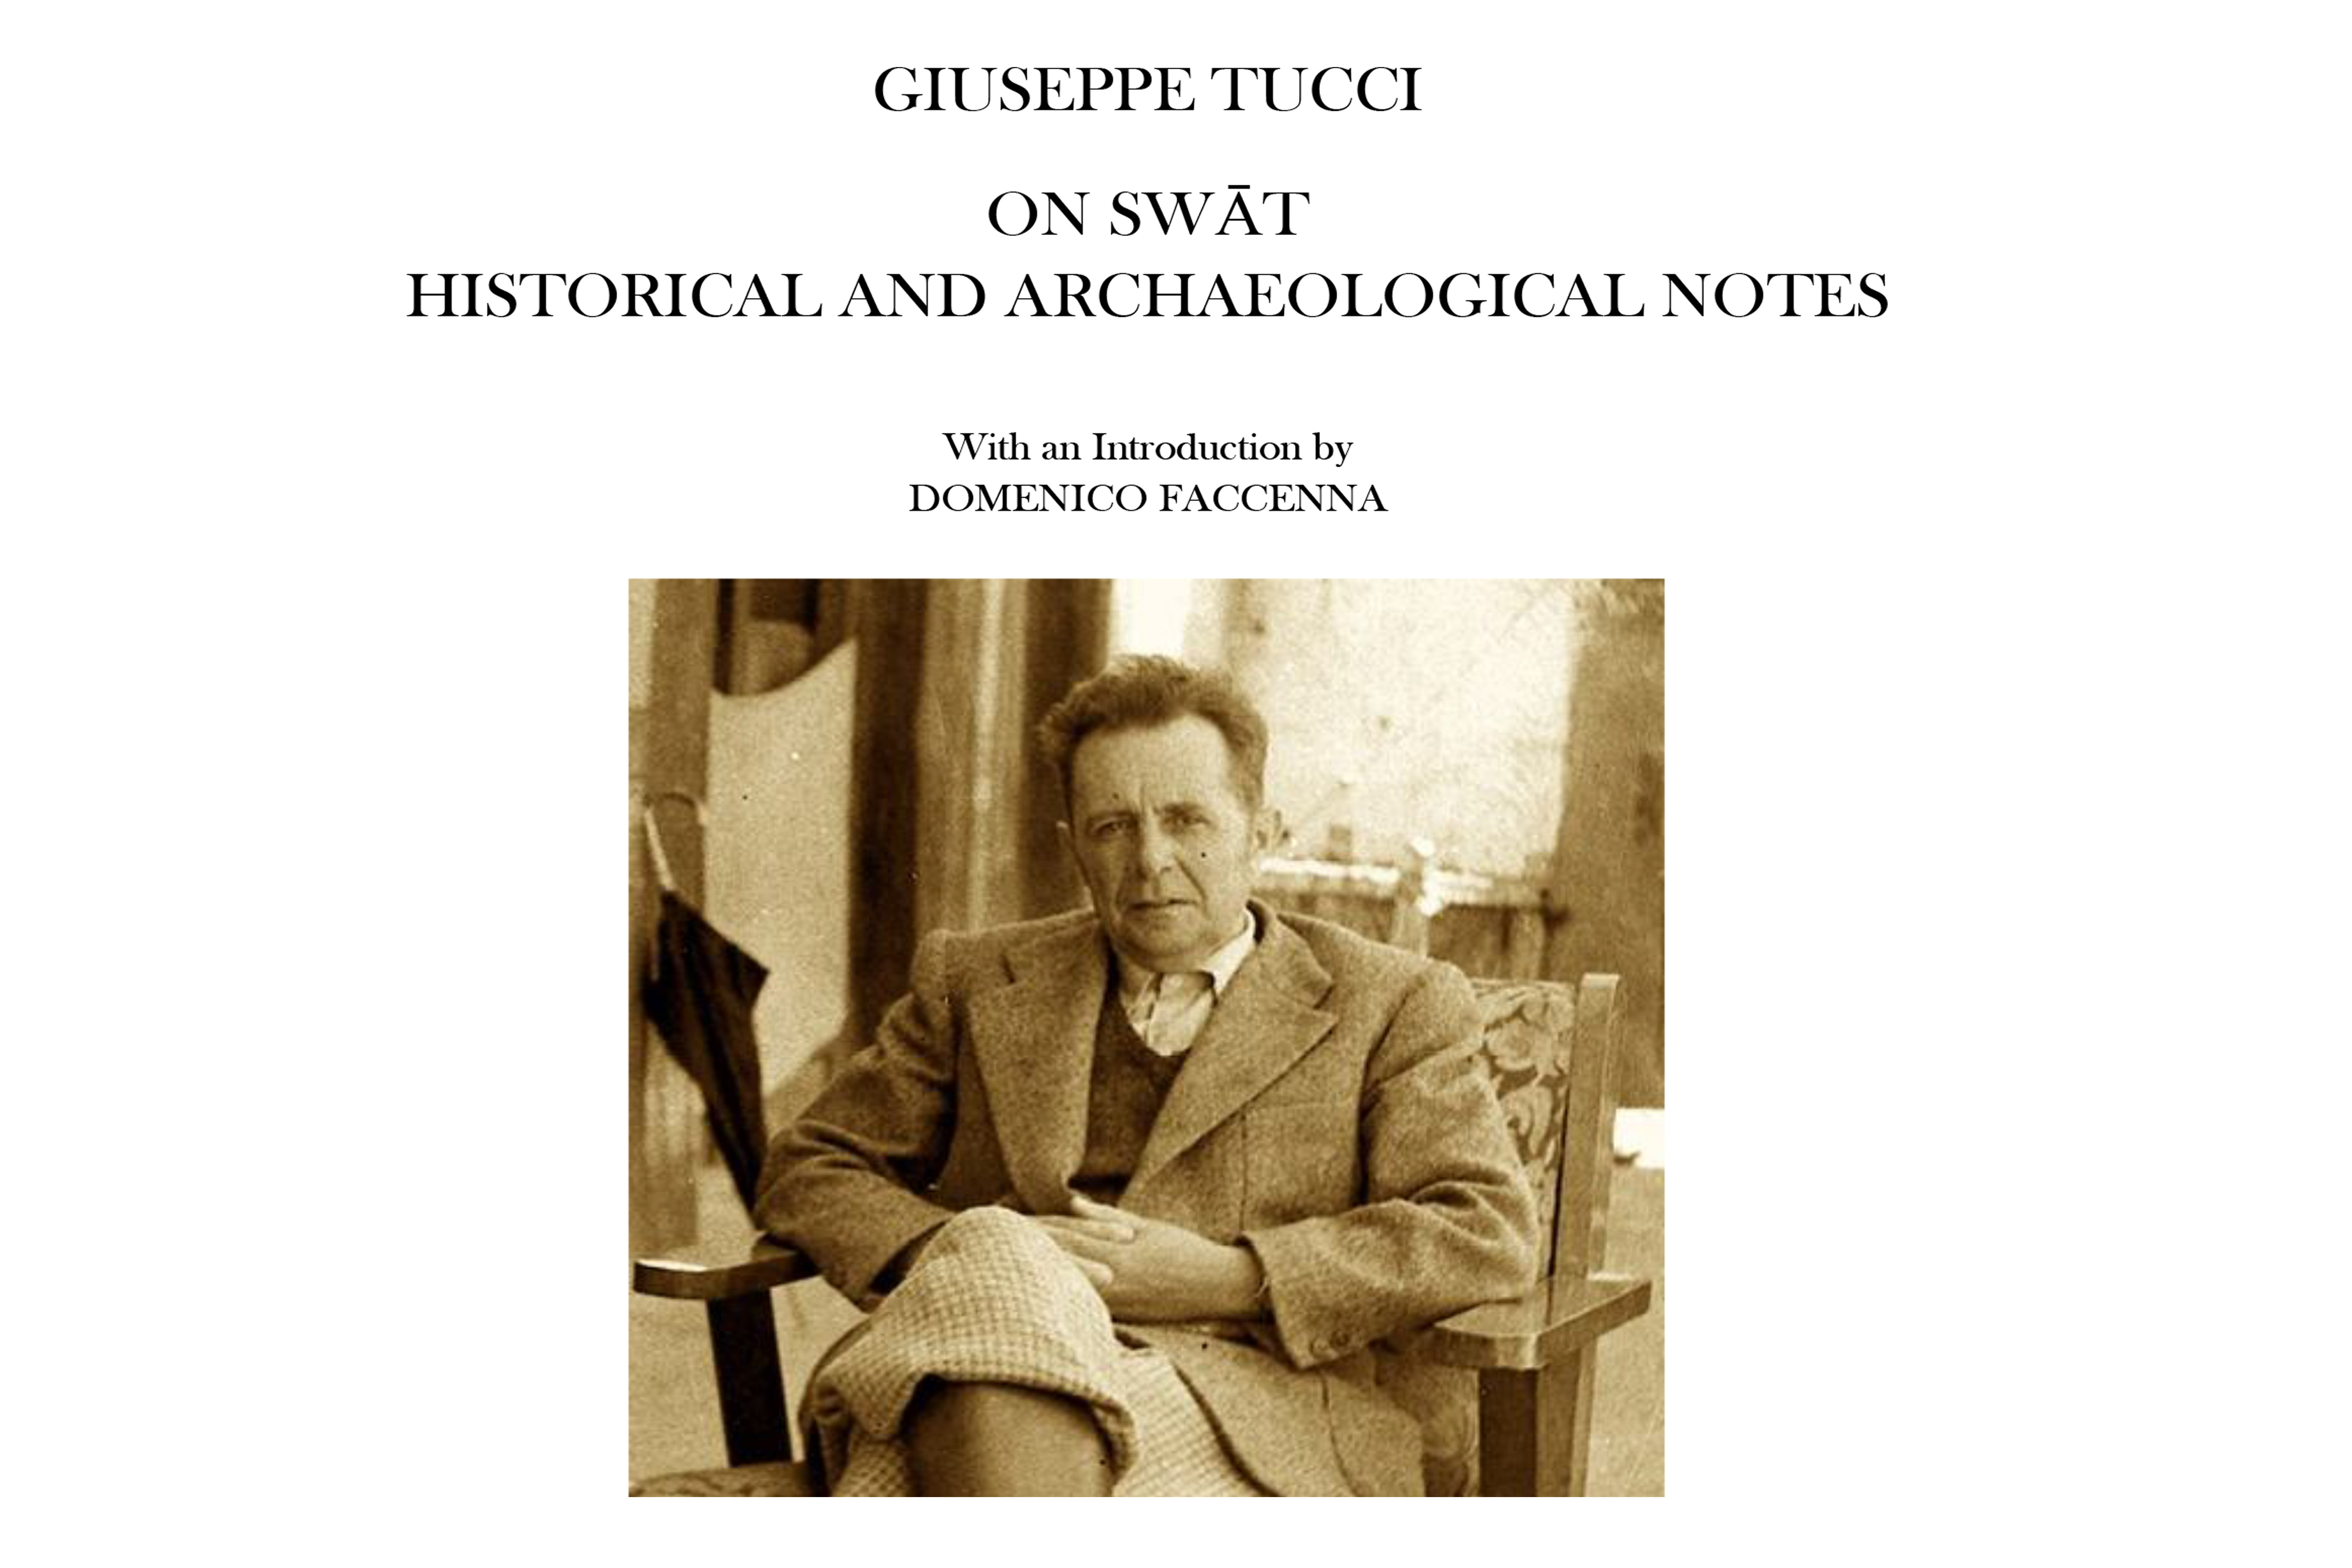 Recently published Tucci's seminal research work, a worth reading addition on Swat